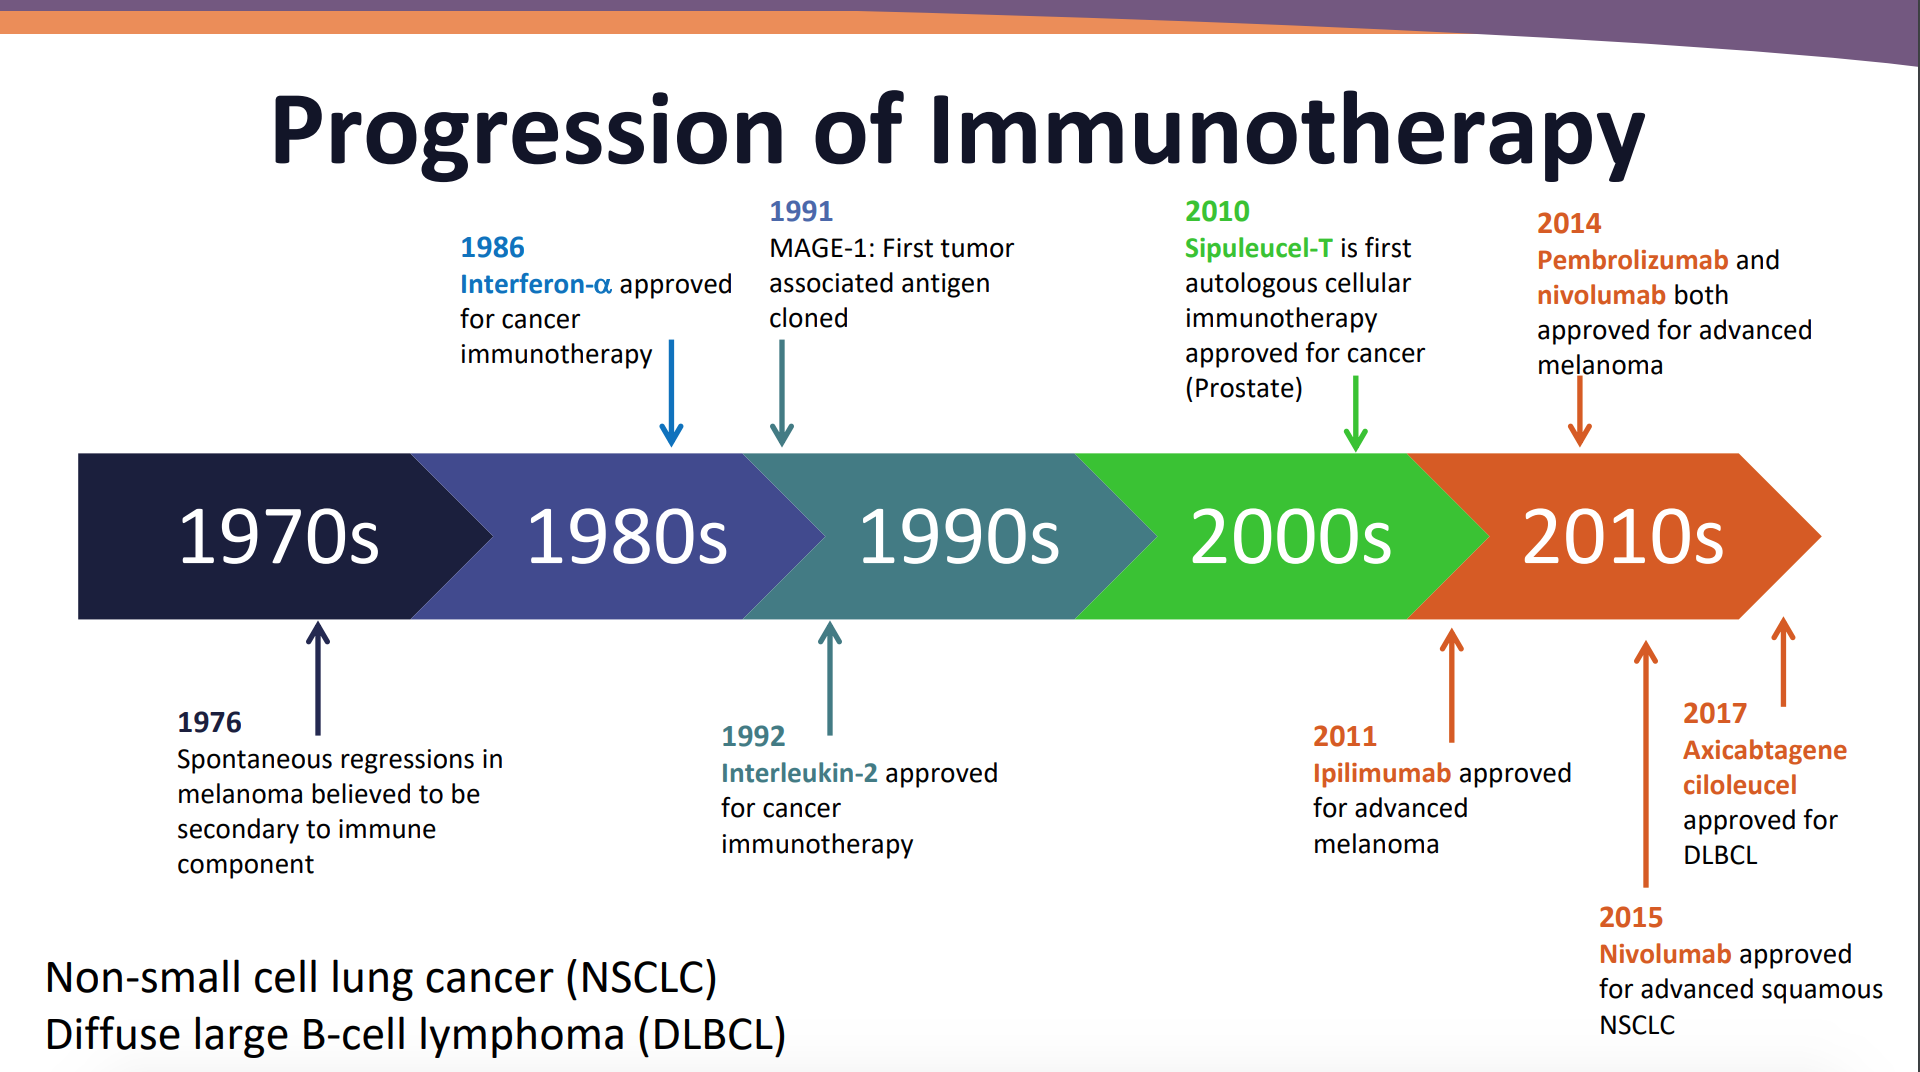 Immunotherapy: Managing Immune-Related Toxicities in Patients